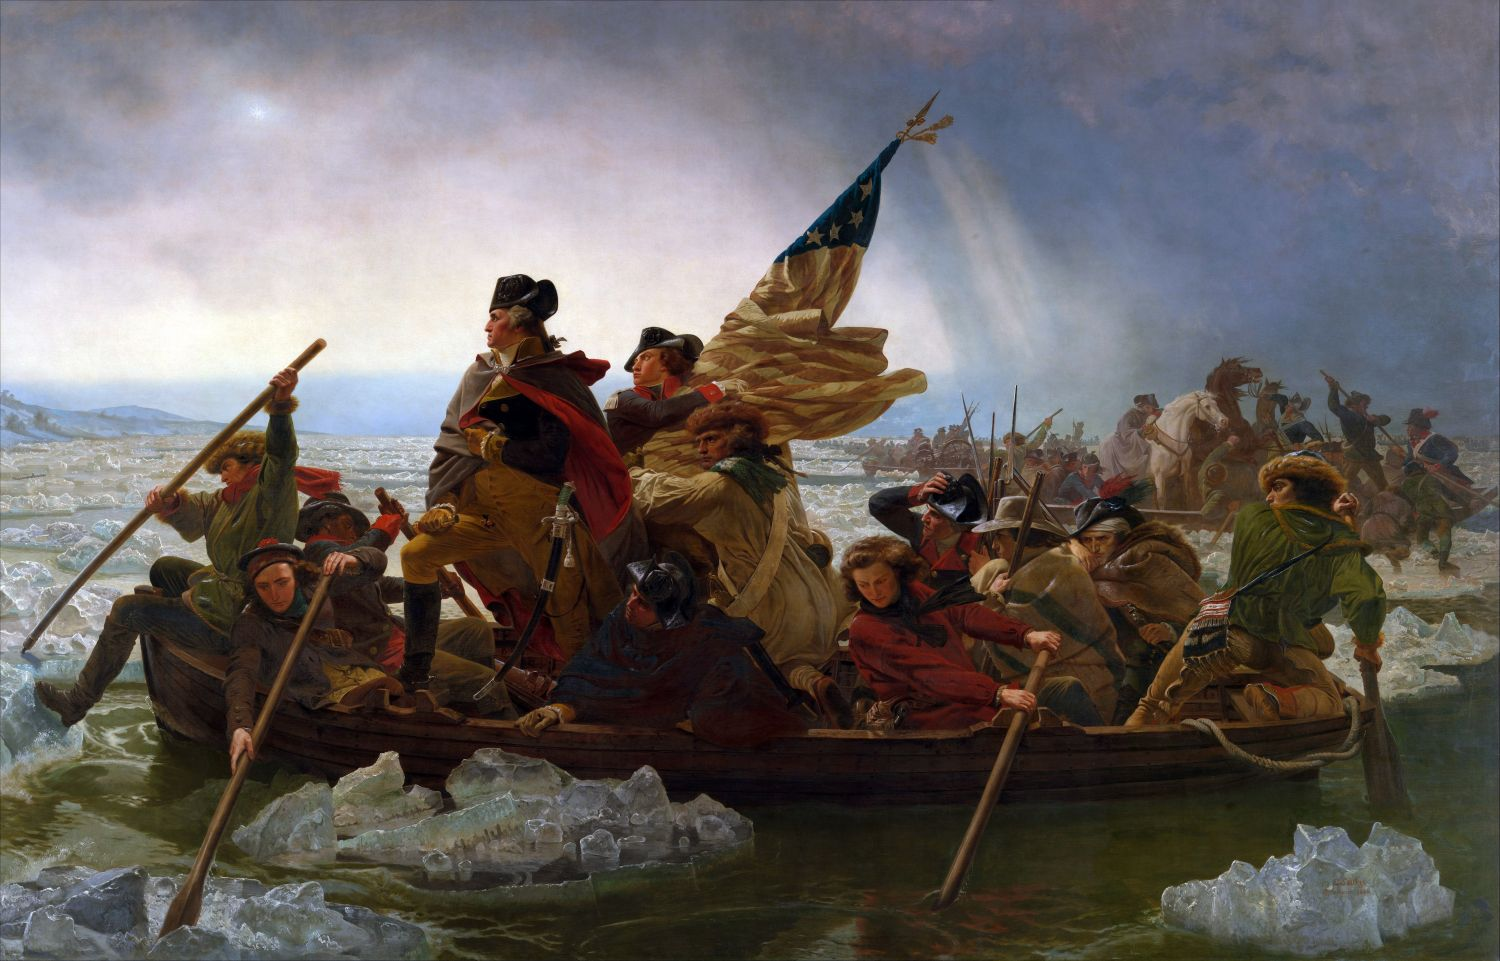 Washington Crossing the Delaware by Emanuel Leutze, MMA-NYC, 1851 - Photo Credit:  Emanuel Leutze [Public domain]